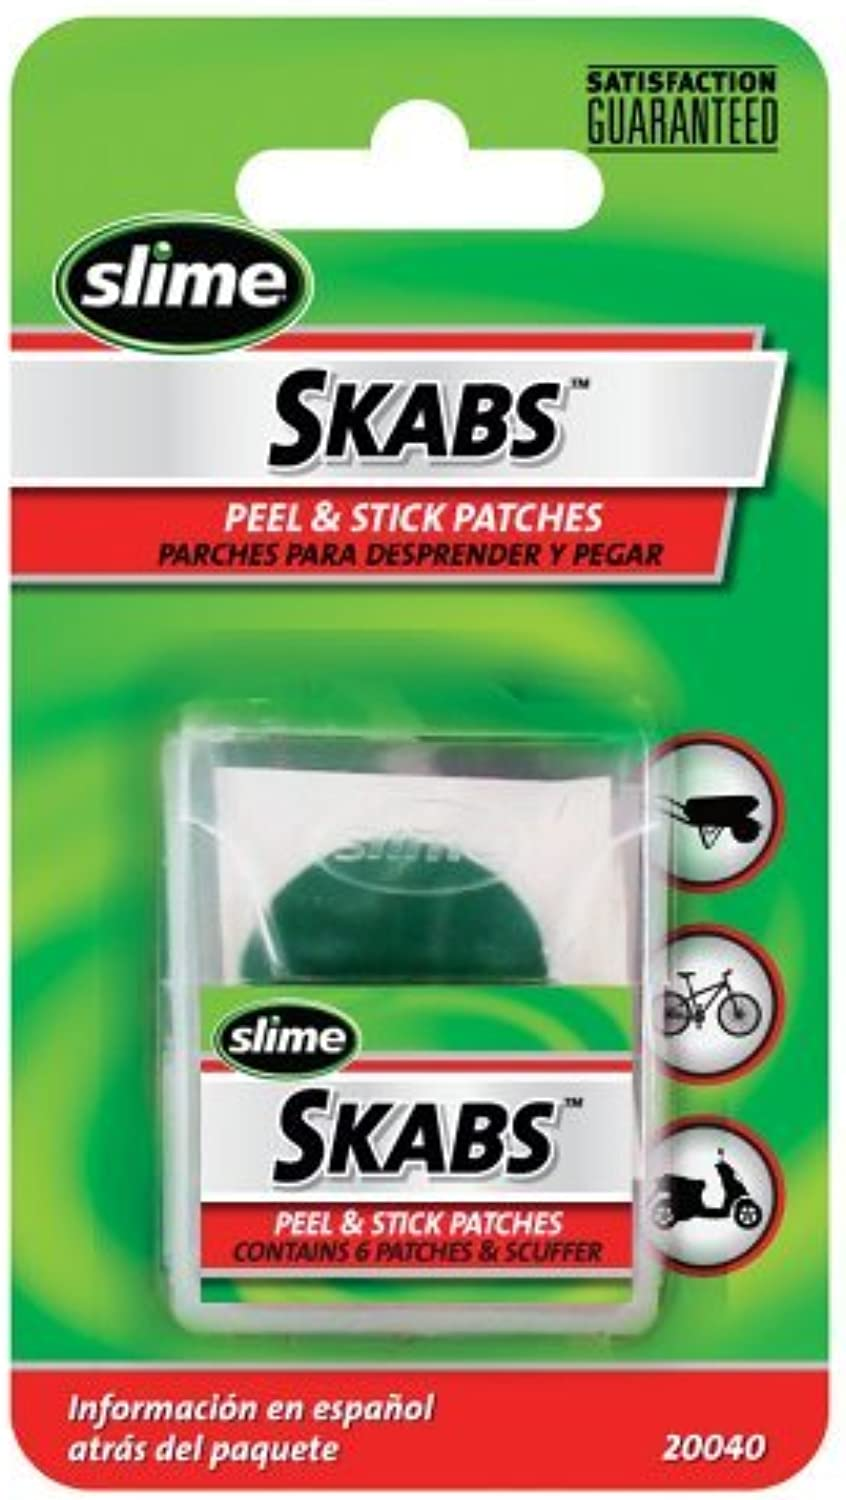 Slime Skabs Glue Less Carded Patch Kit by Slime